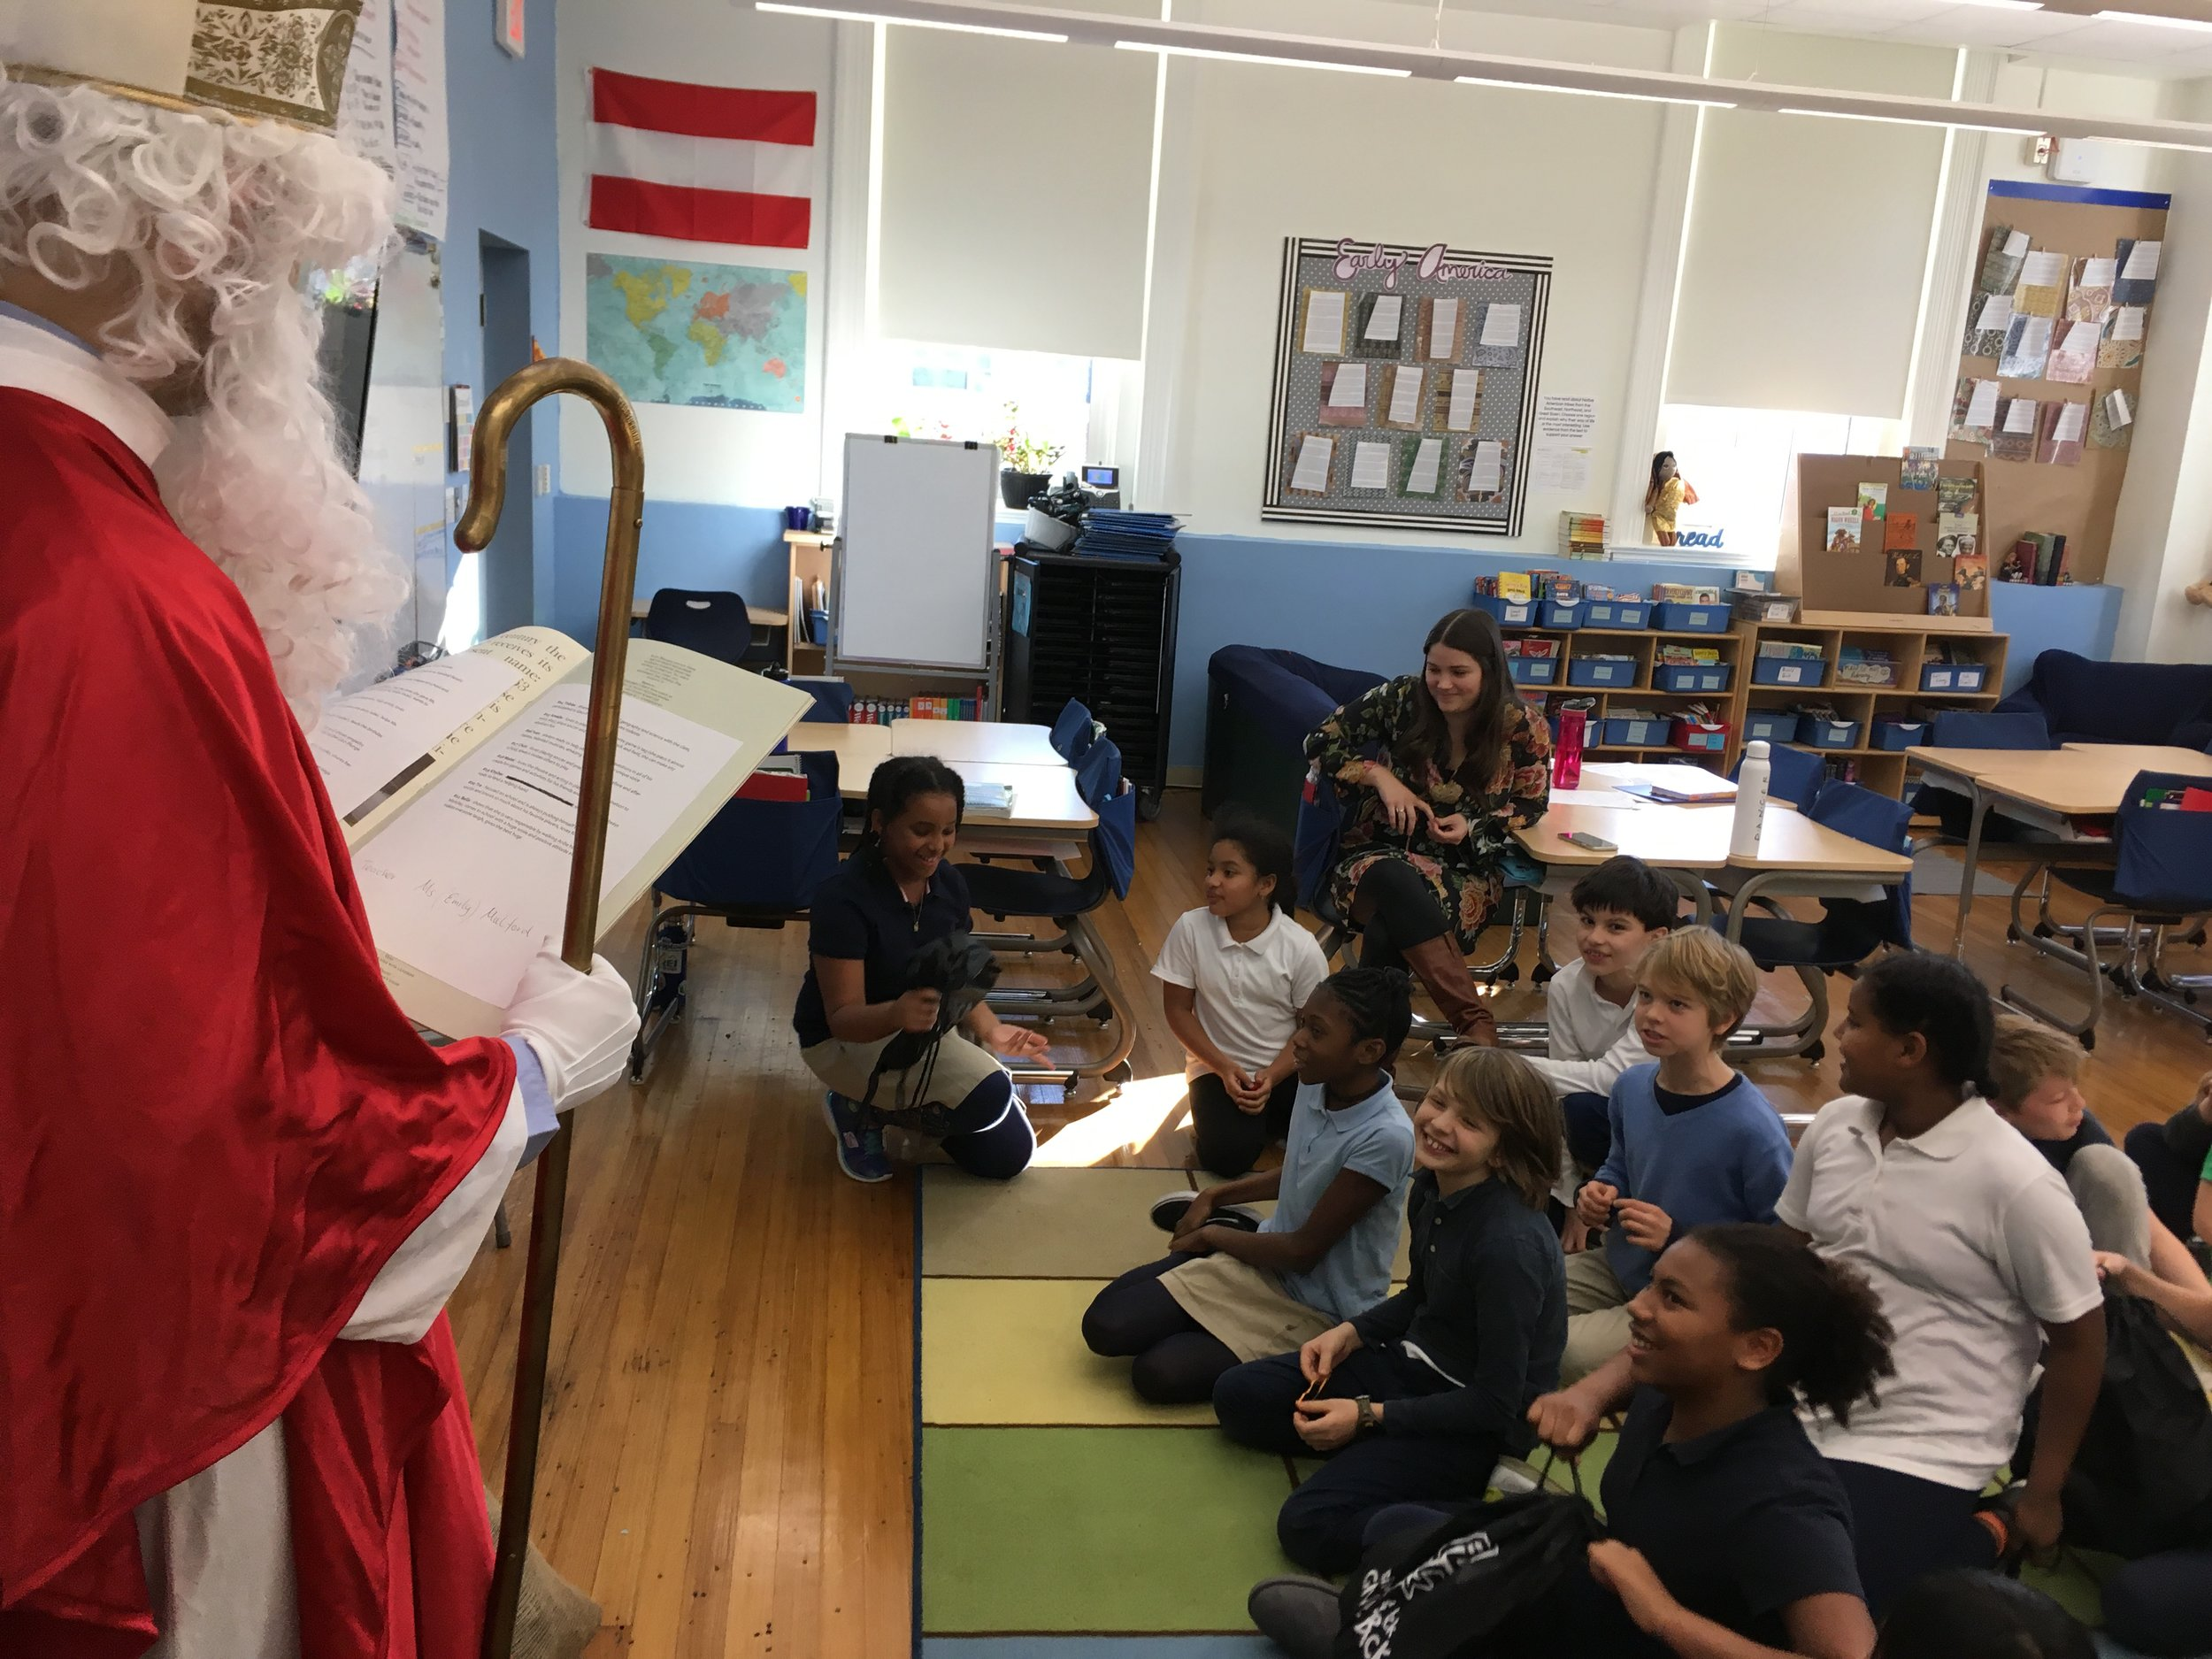 A Surprise Visit by Saint Nicholas at Ross Elementary School